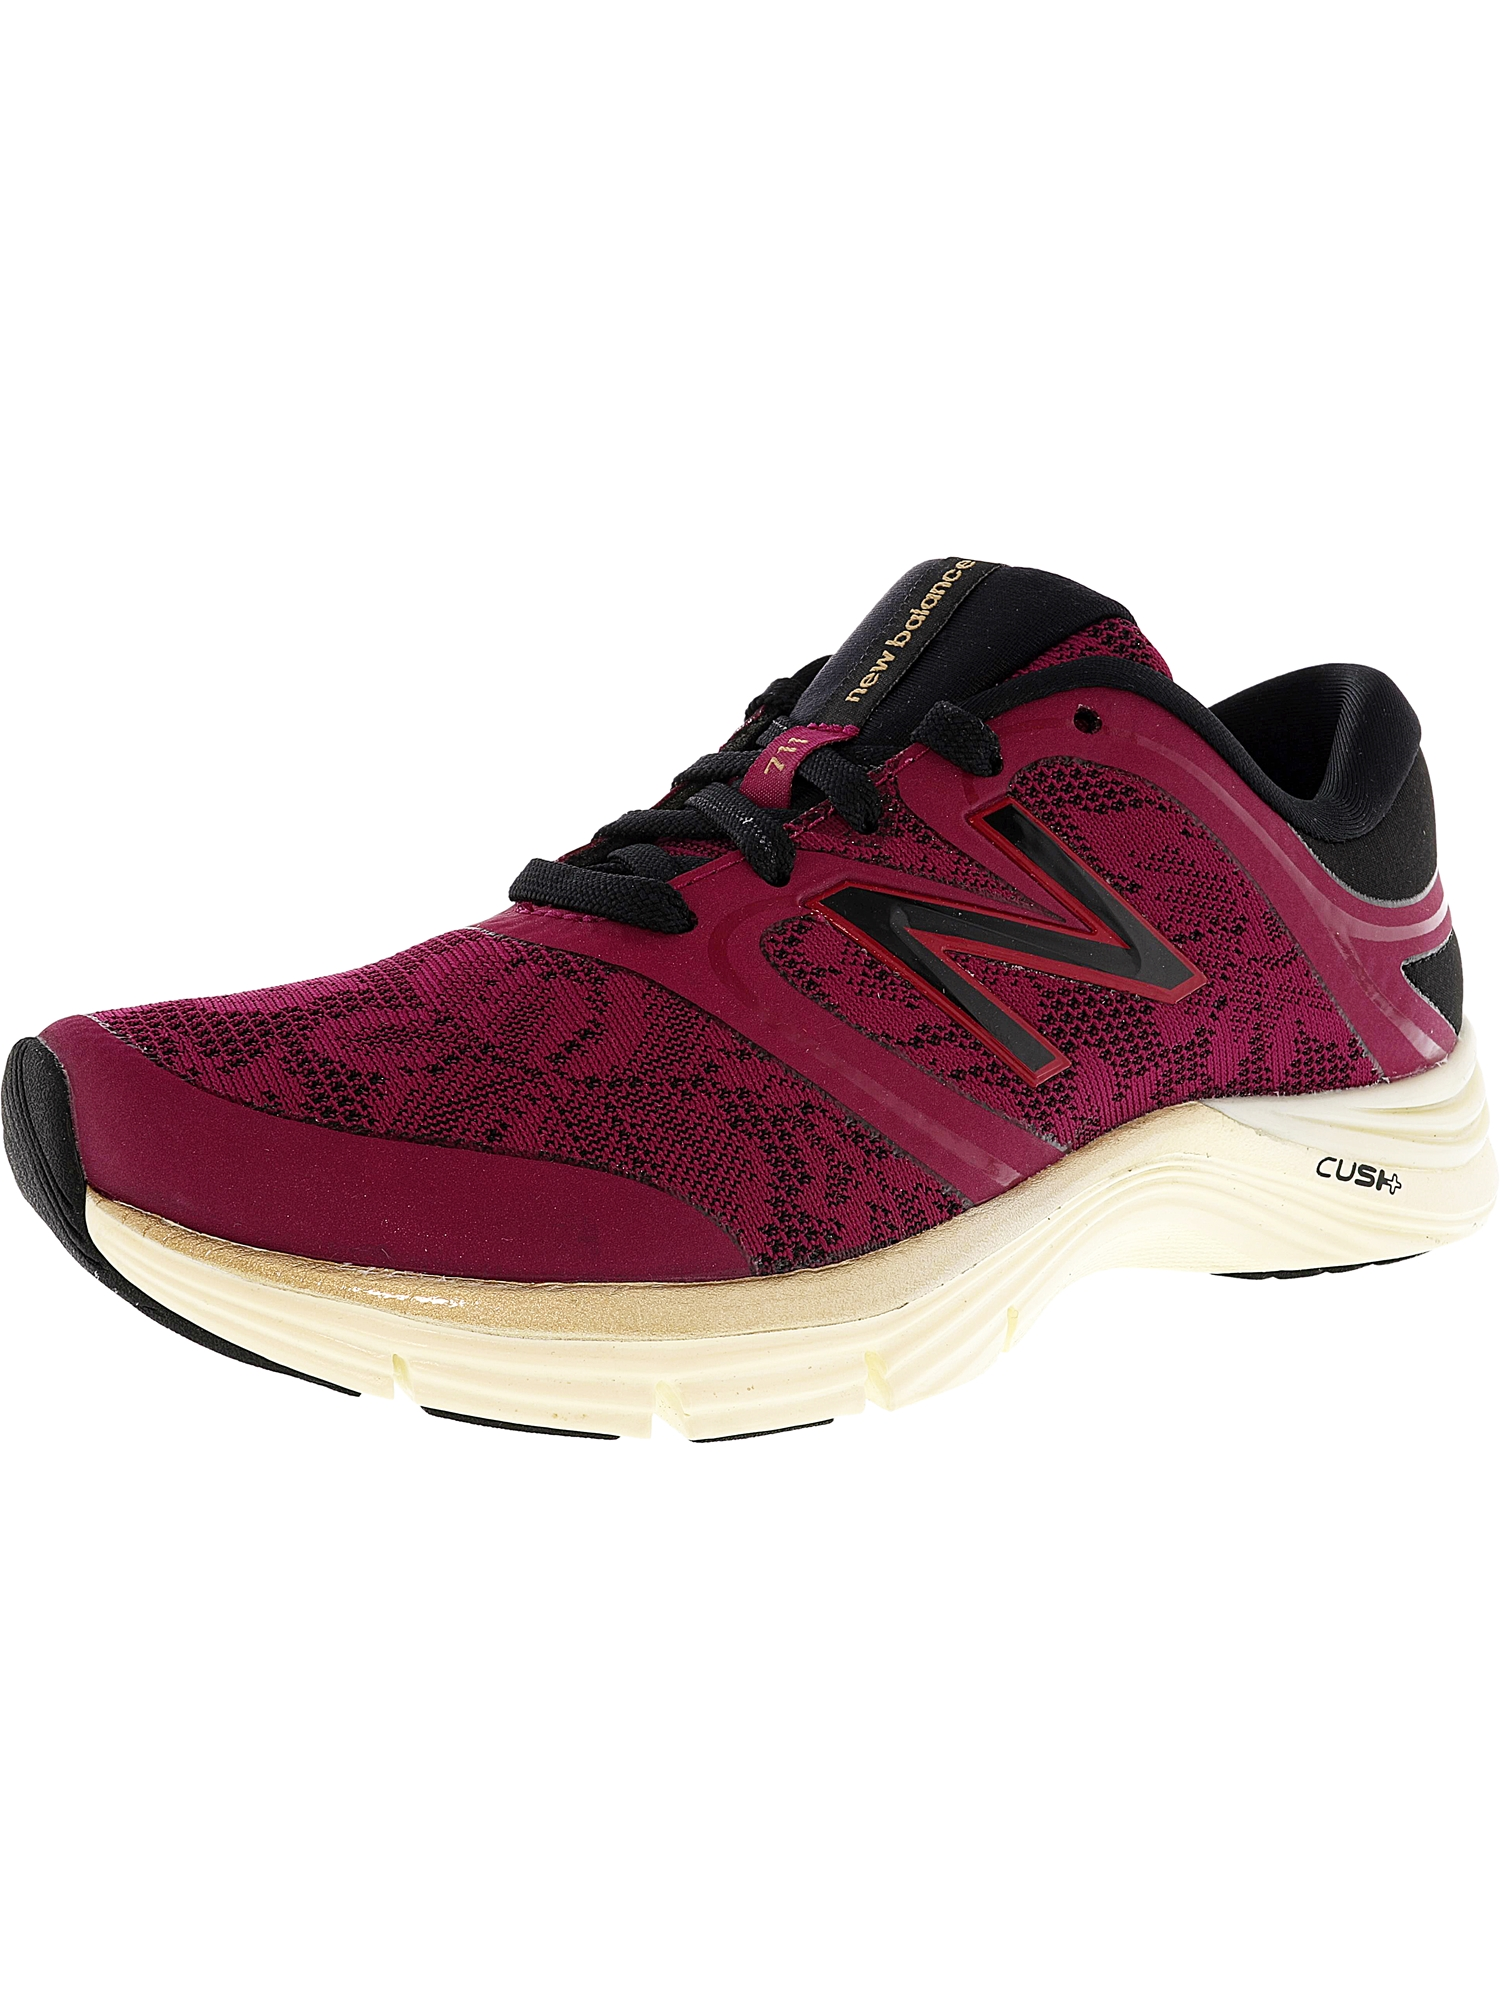 New Balance Women's Wx711 Cg3 Ankle-High Mesh Running Shoe 11M by New Balance